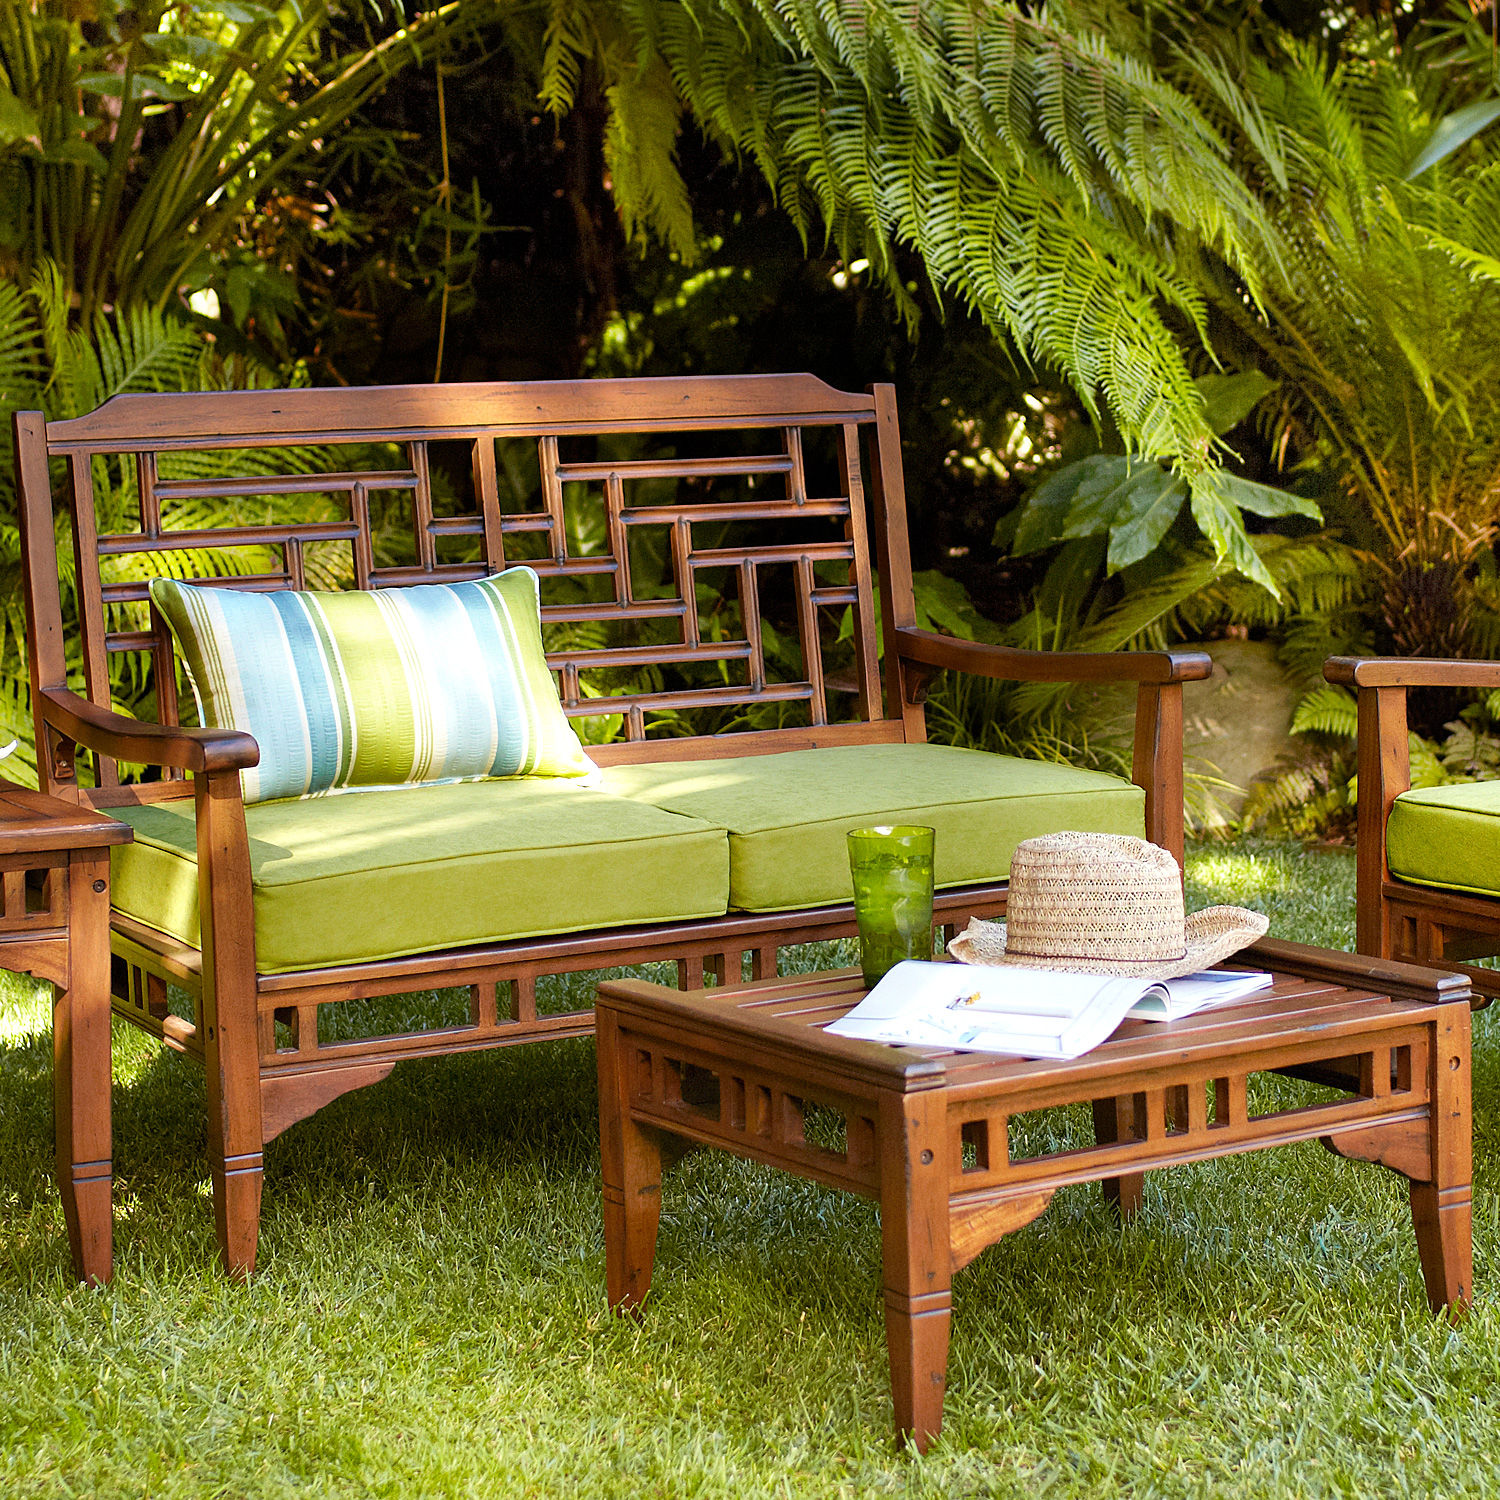 Outdoor furniture stellar interior design for Outdoor garden furniture